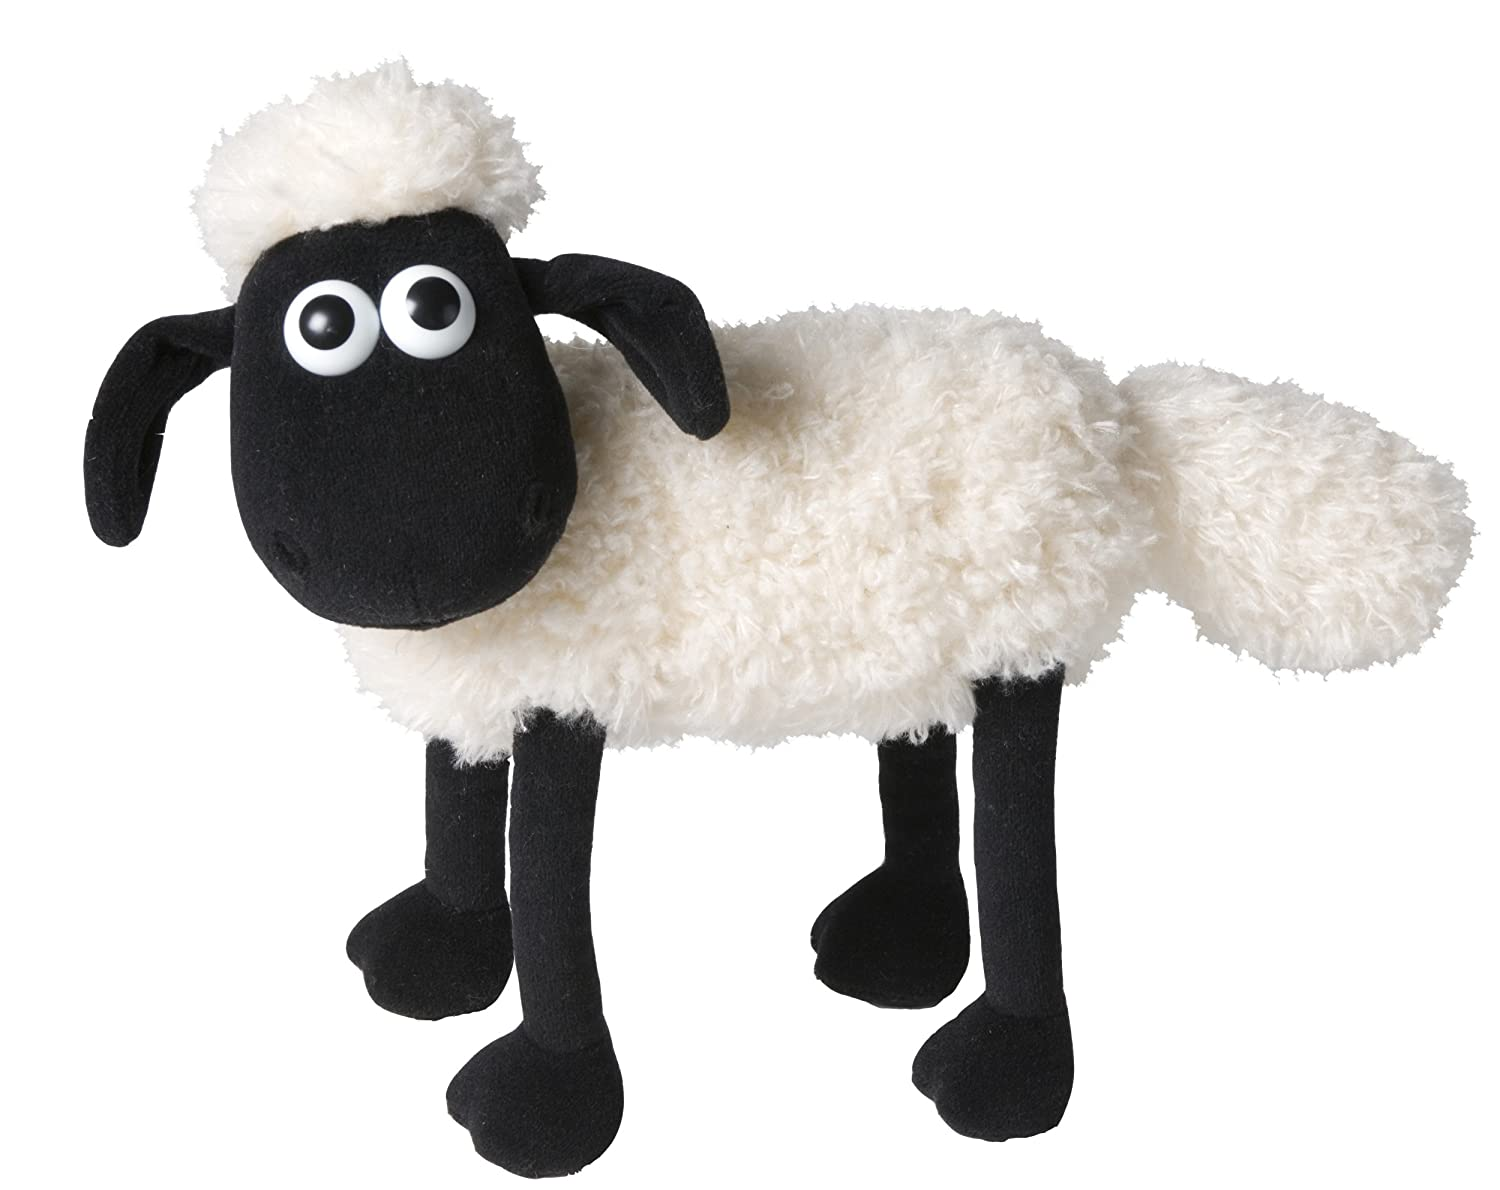 Amazon.com: Shivering Shaun the Sheep Soft Toy: Toys & Games